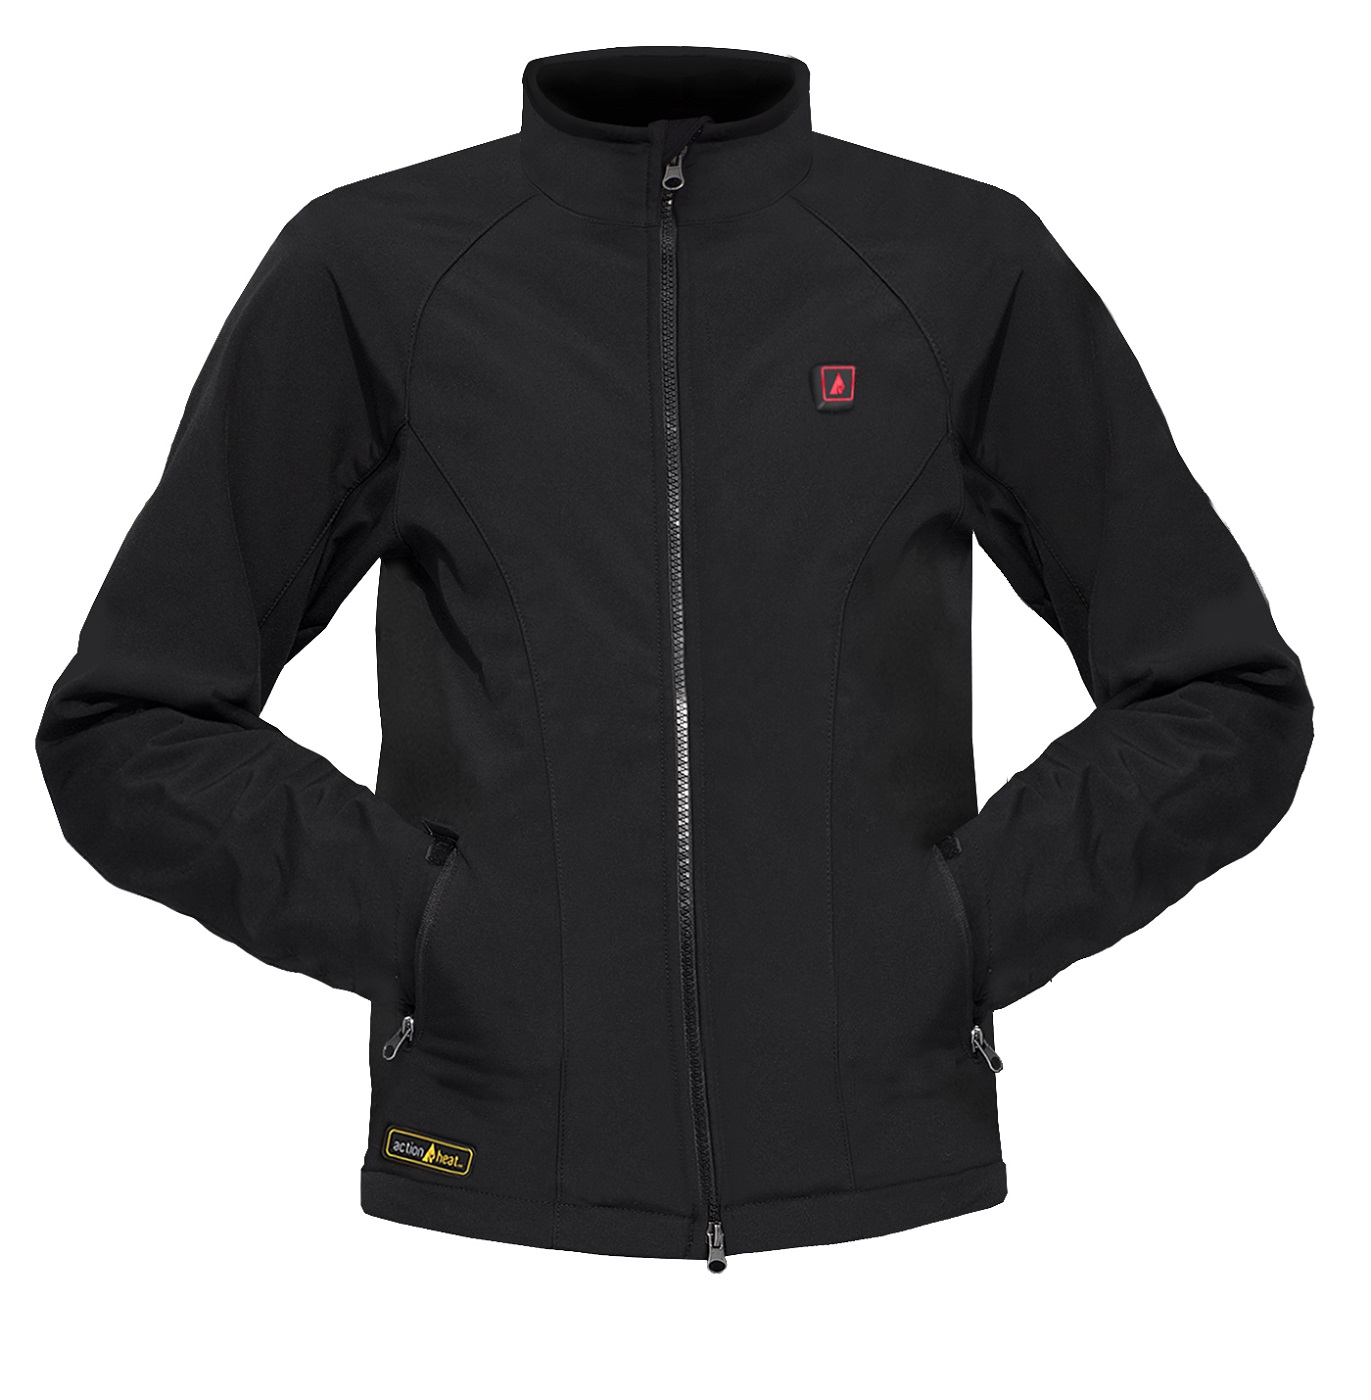 actionheat 5v battery heated jacket - men's - the warming store